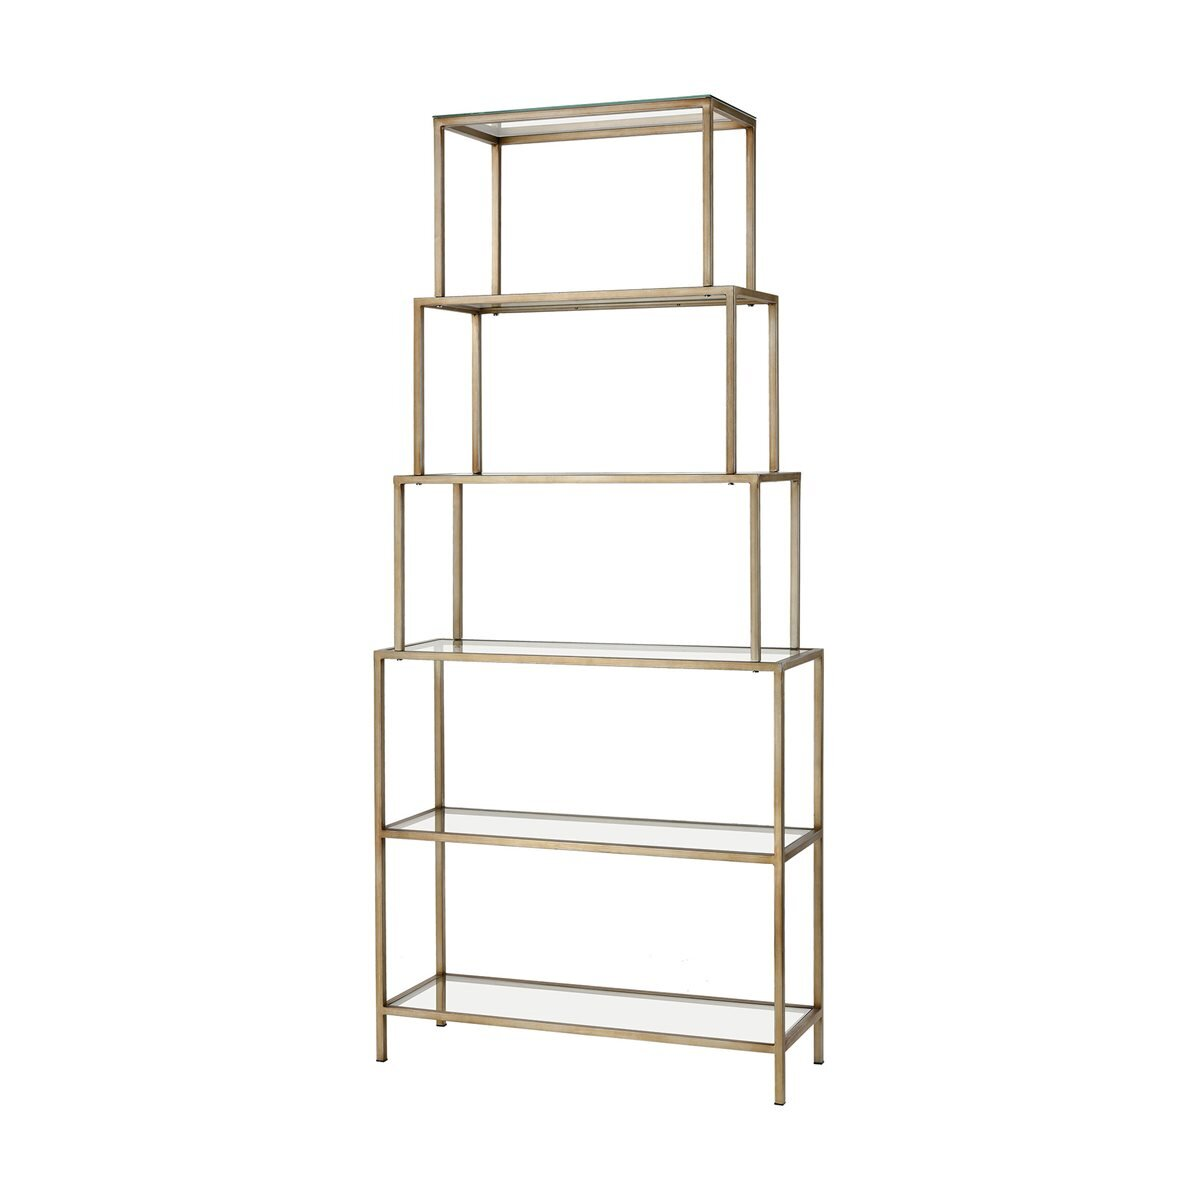 Geometric Glass Bookcases You Ll Love In 2021 Wayfair